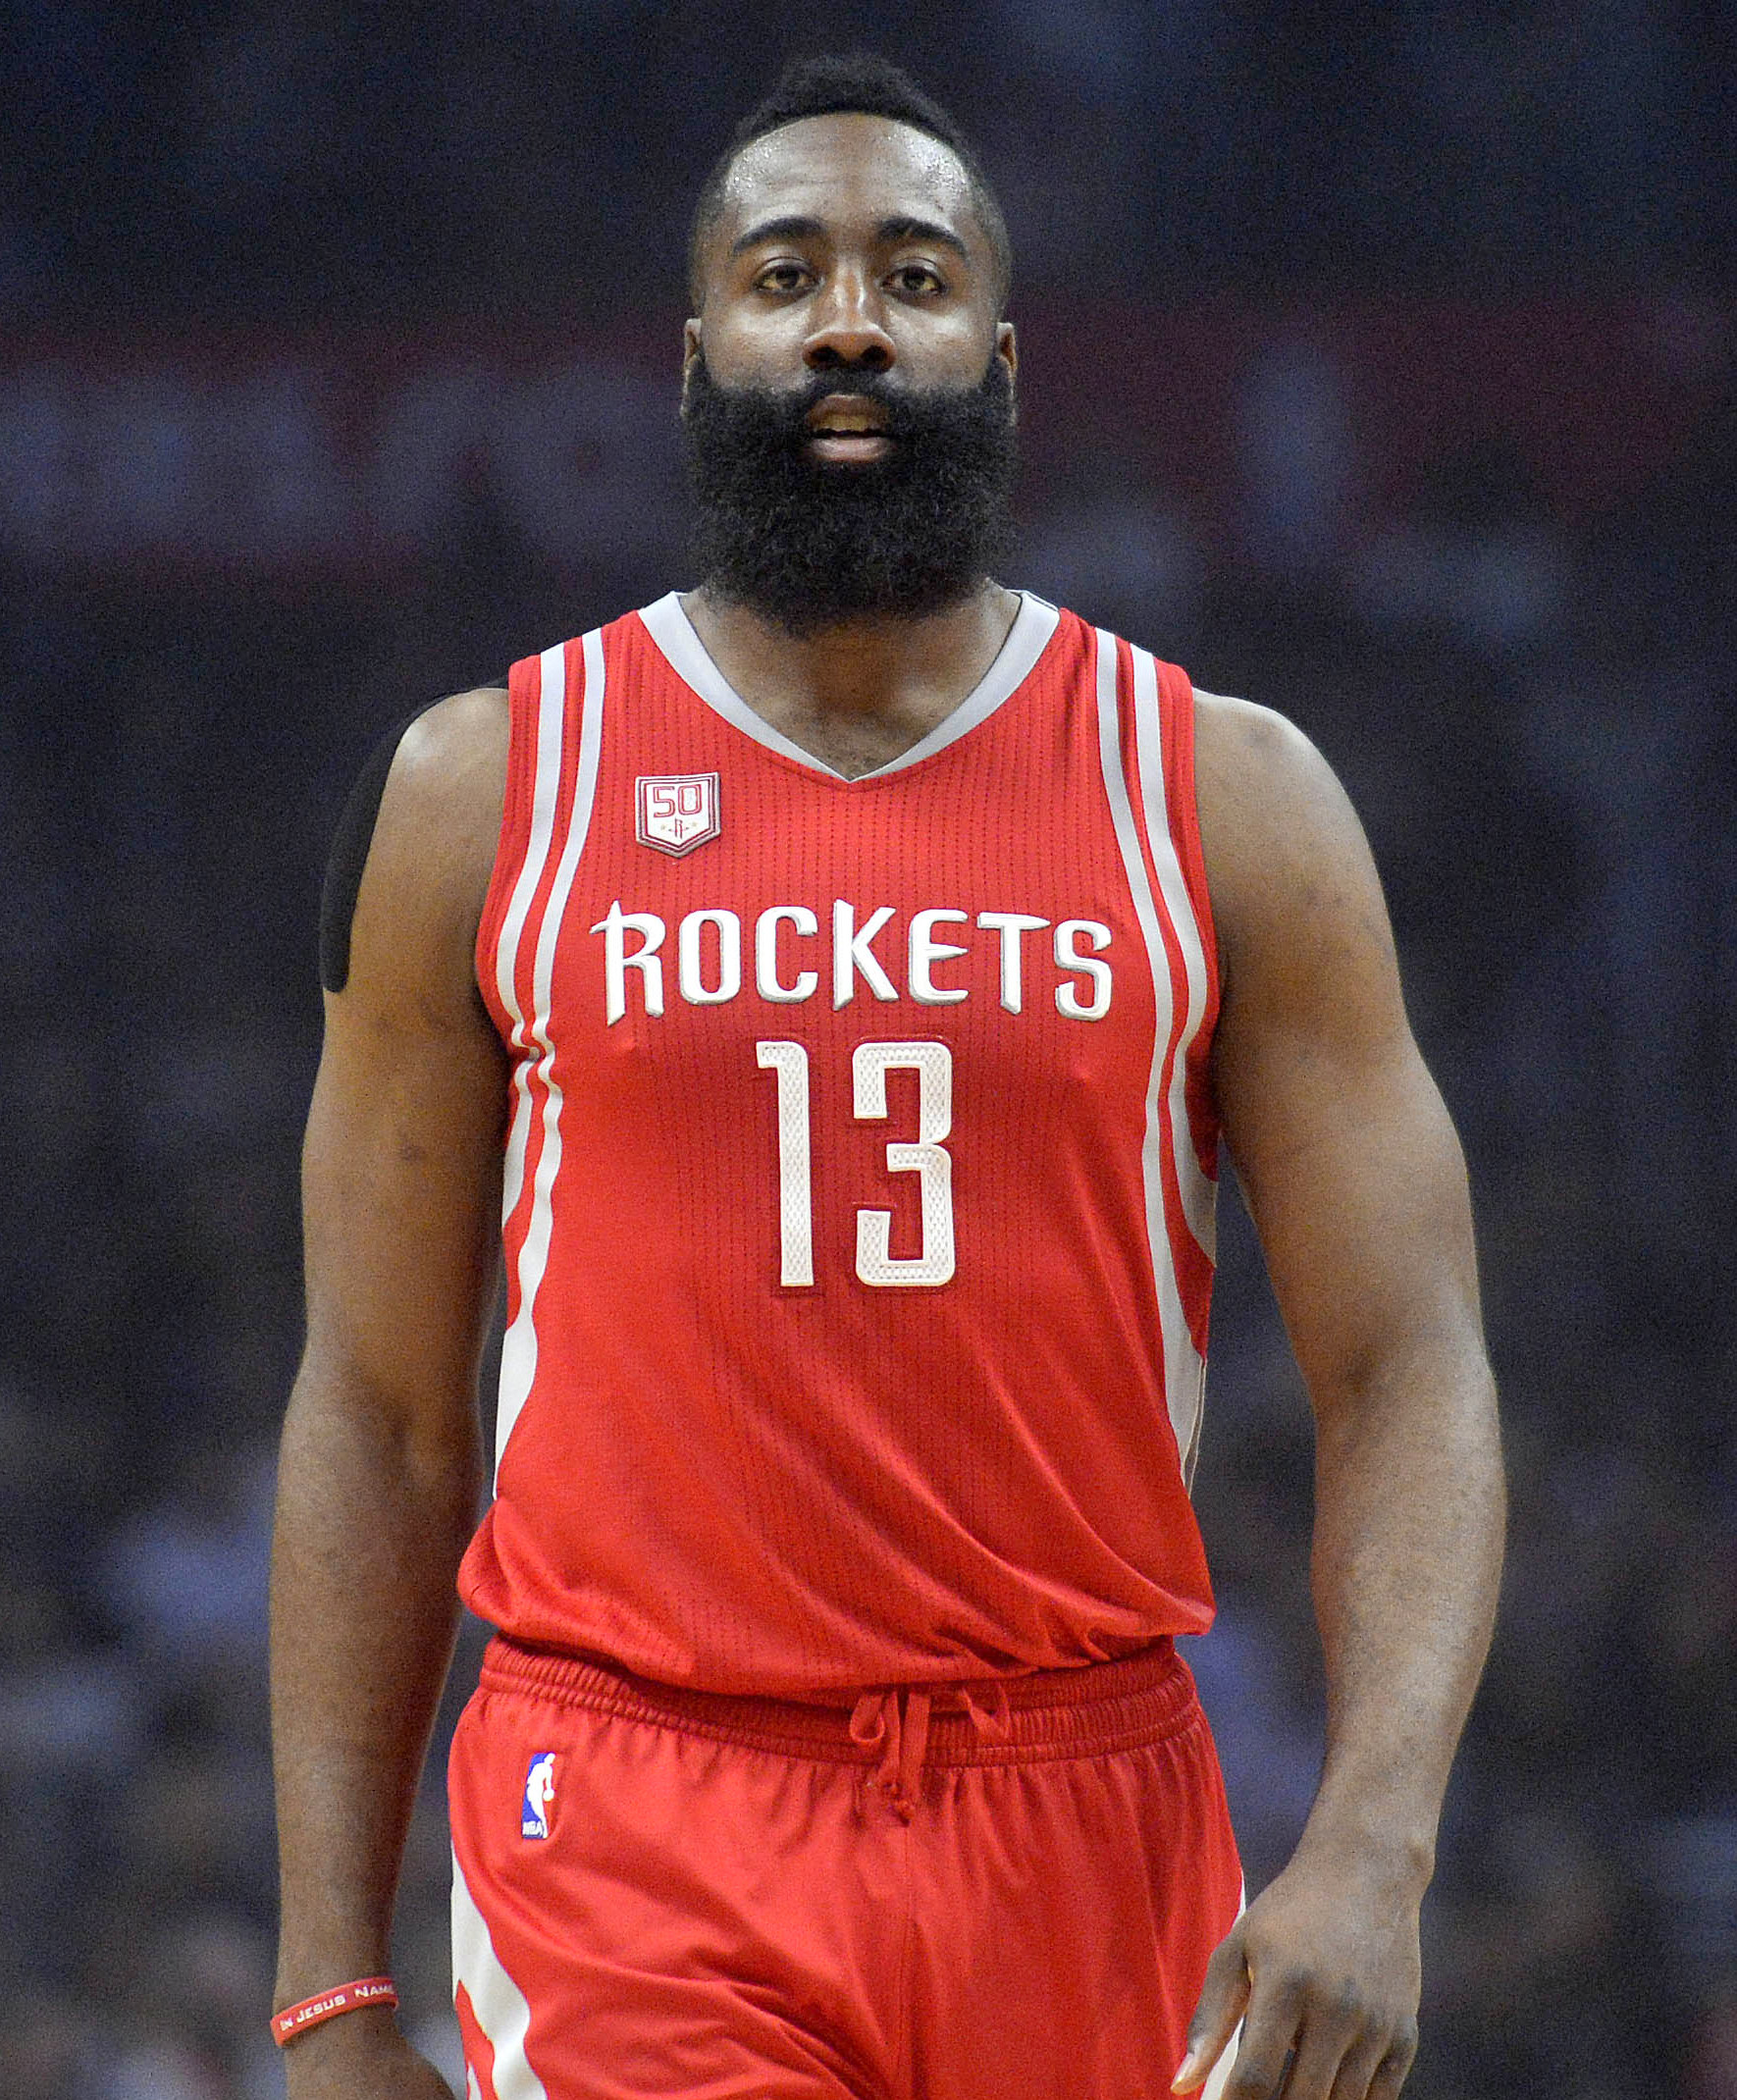 Who is james harden girlfriend